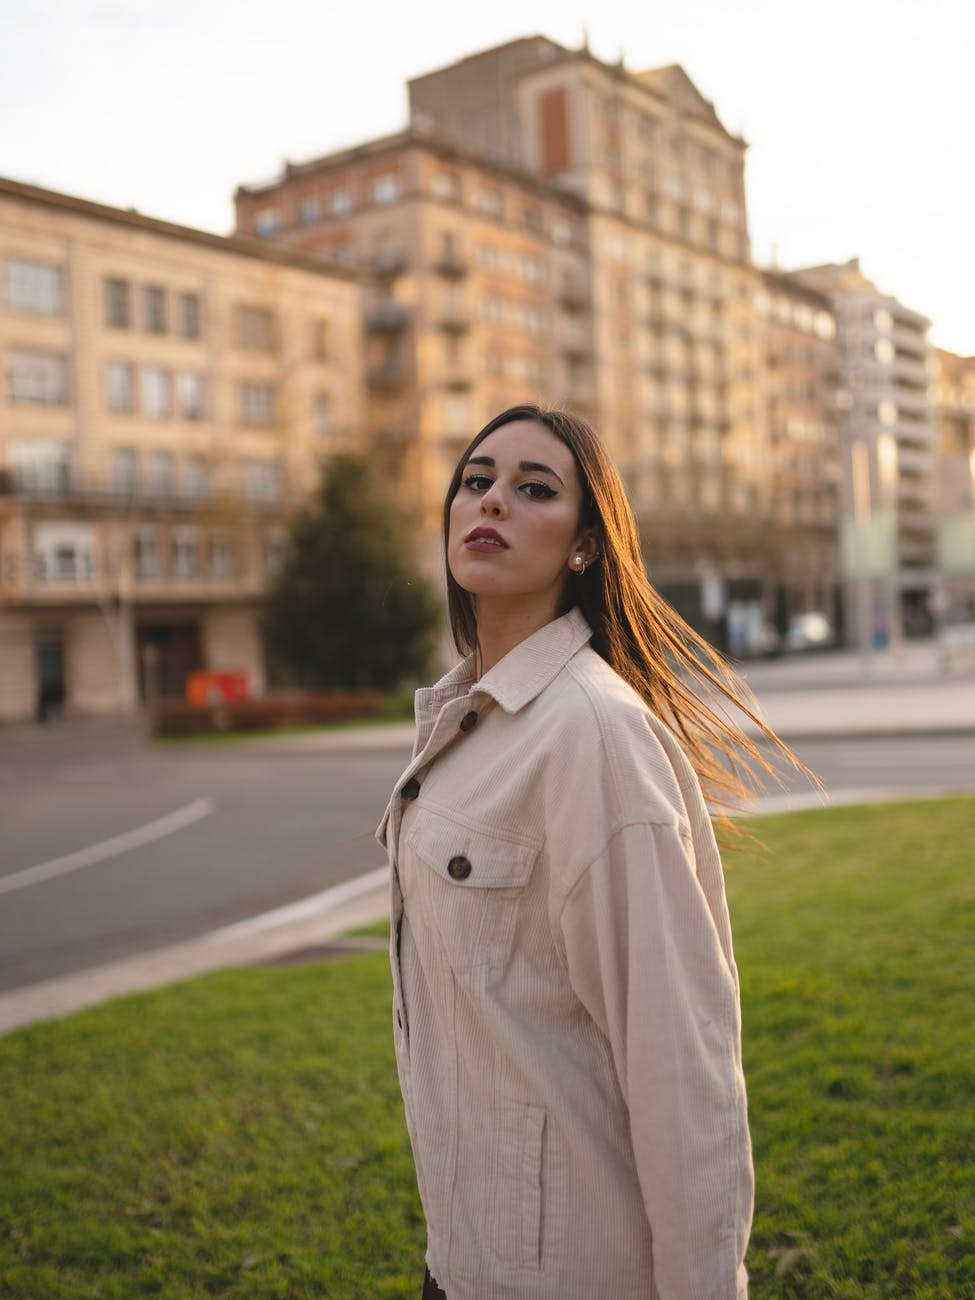 stylish young serious woman standing on city street at sunset